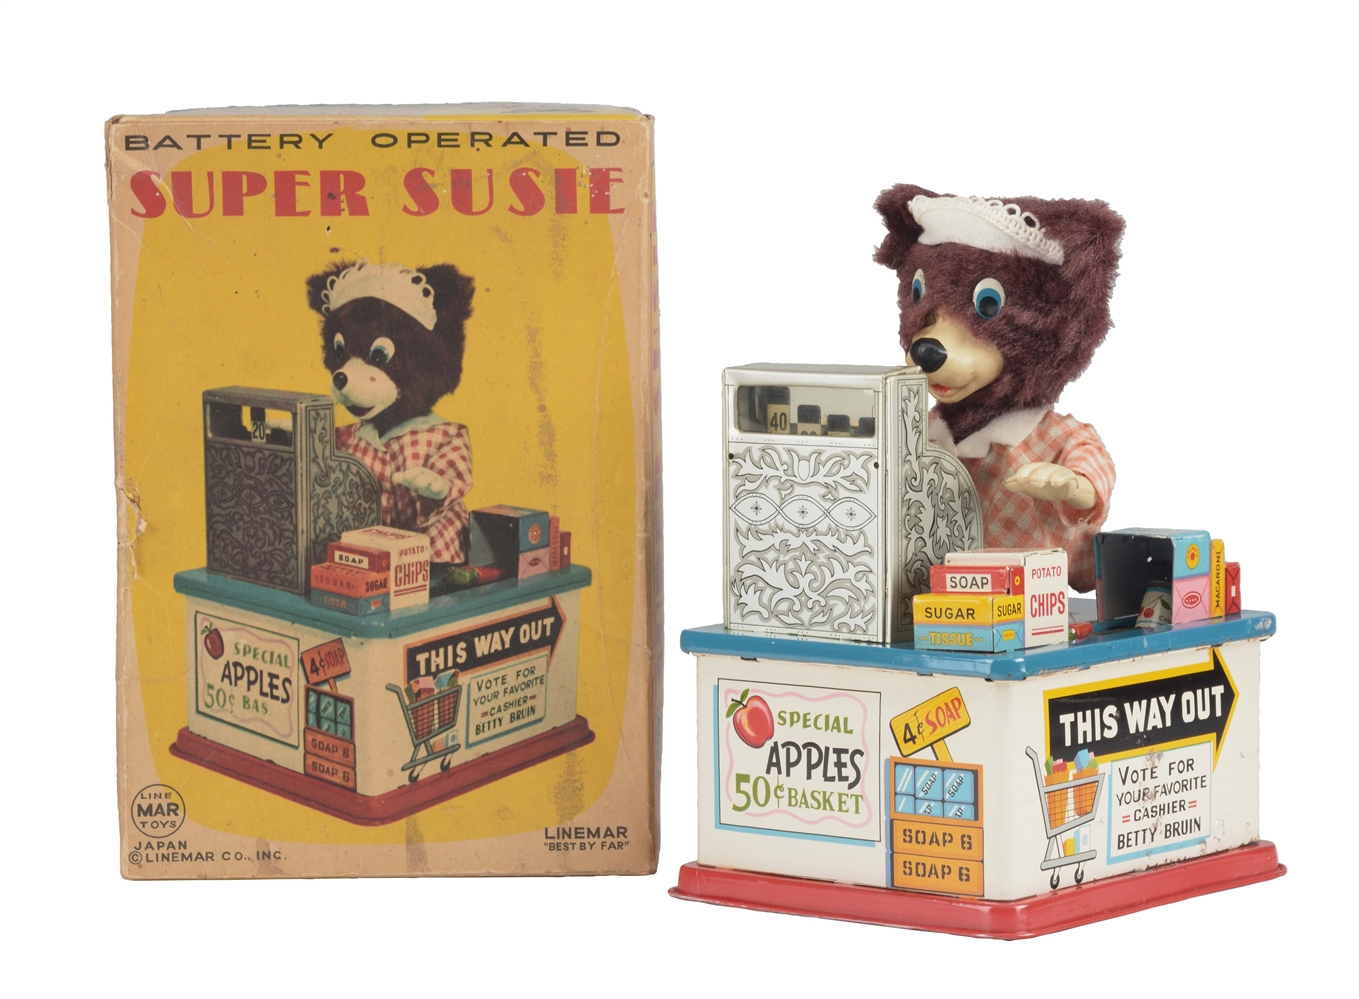 Japanese Tin Litho Battery Operated Super Susie Cashier Bear In Box.